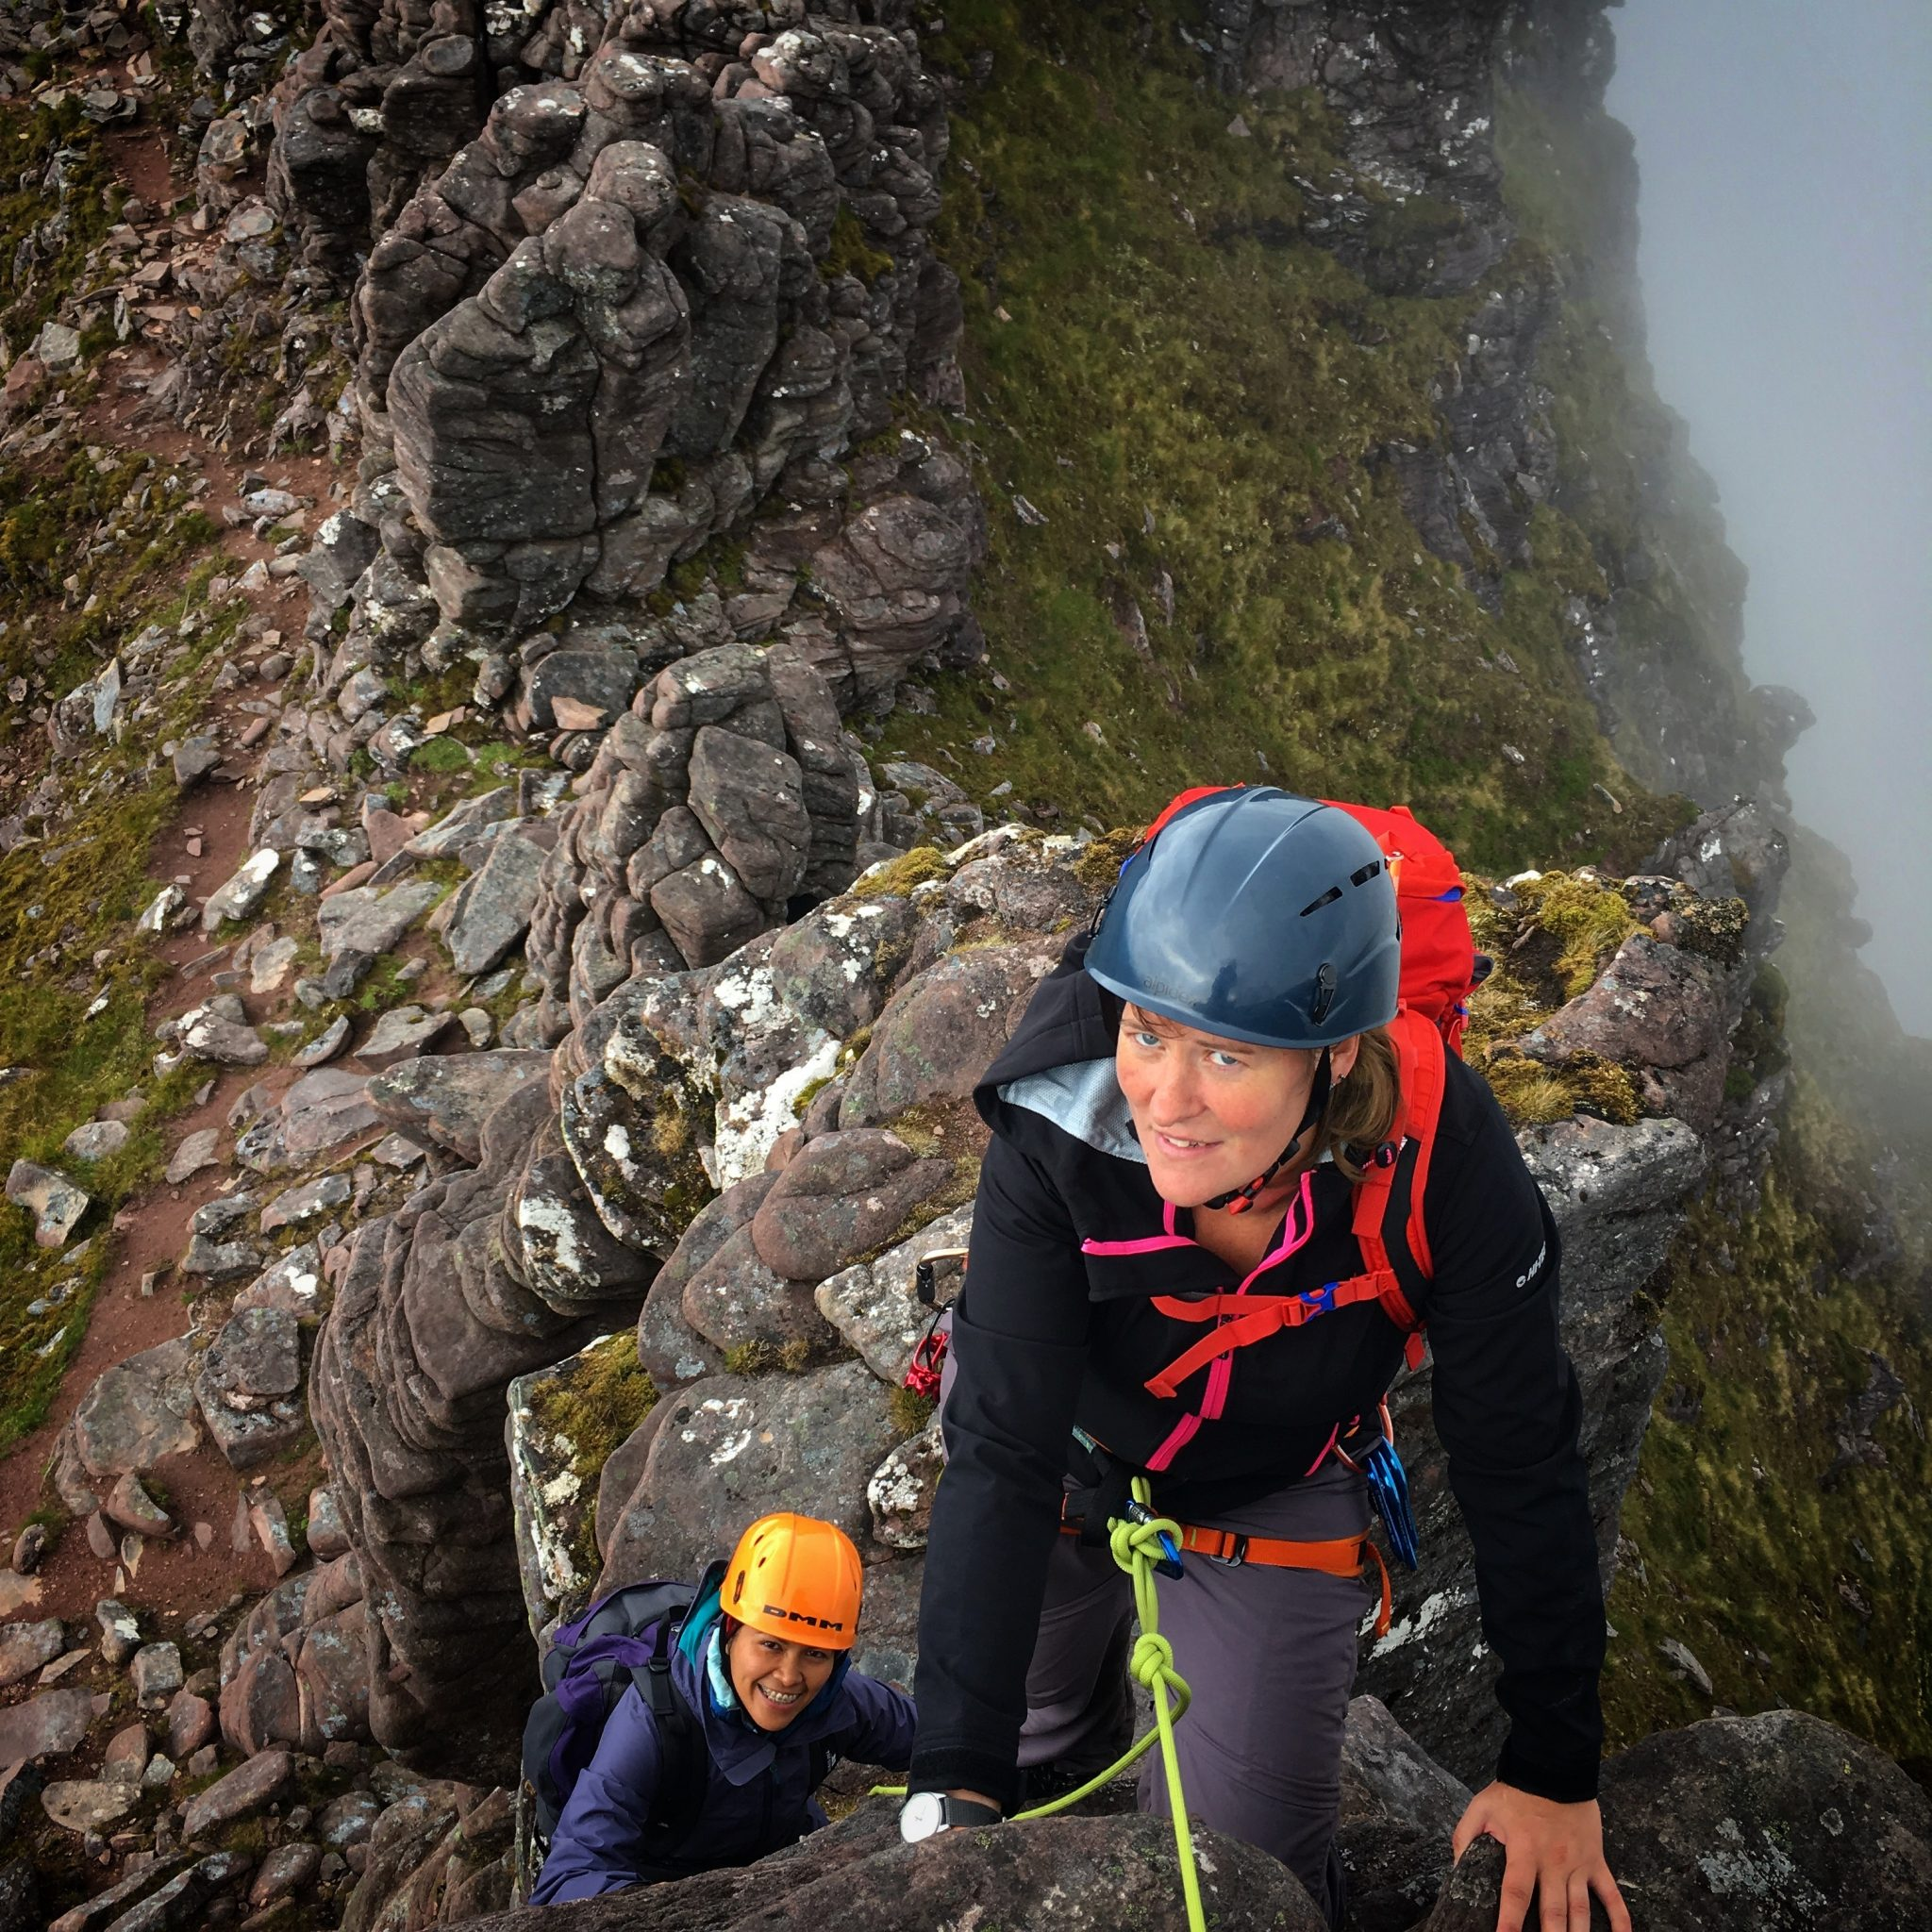 Scramblers traversing the Corrag Bhuidhe pinnacles on An Teallach during a mountaineering course